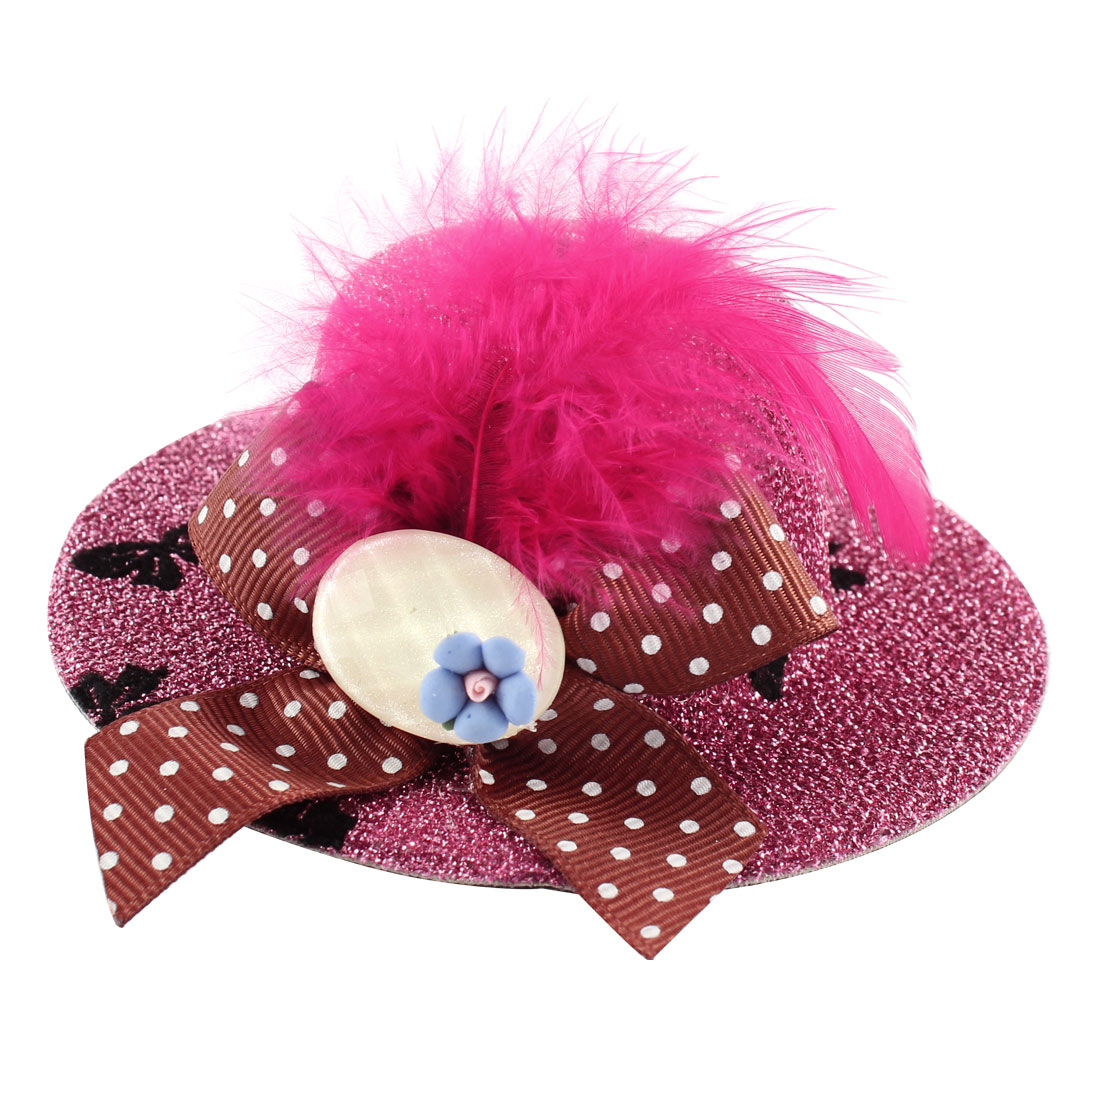 Lady Mini Bowknot Feather Blue Flower Detail Glittery Tinsel Coated Top Hat Hairclip Pink